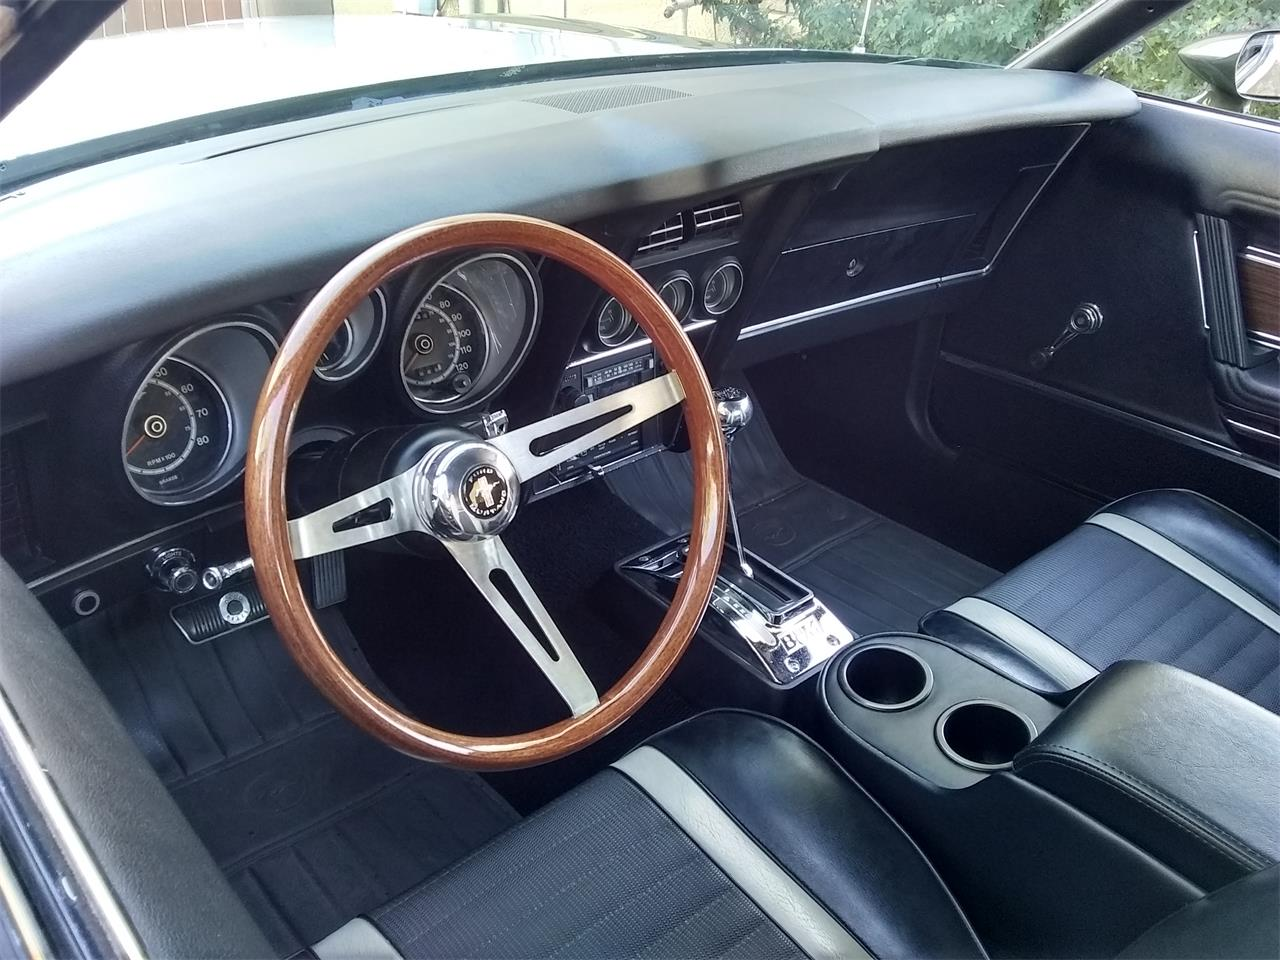 1971 Ford Mustang Mach 1 (CC-1322282) for sale in Surprise, Arizona